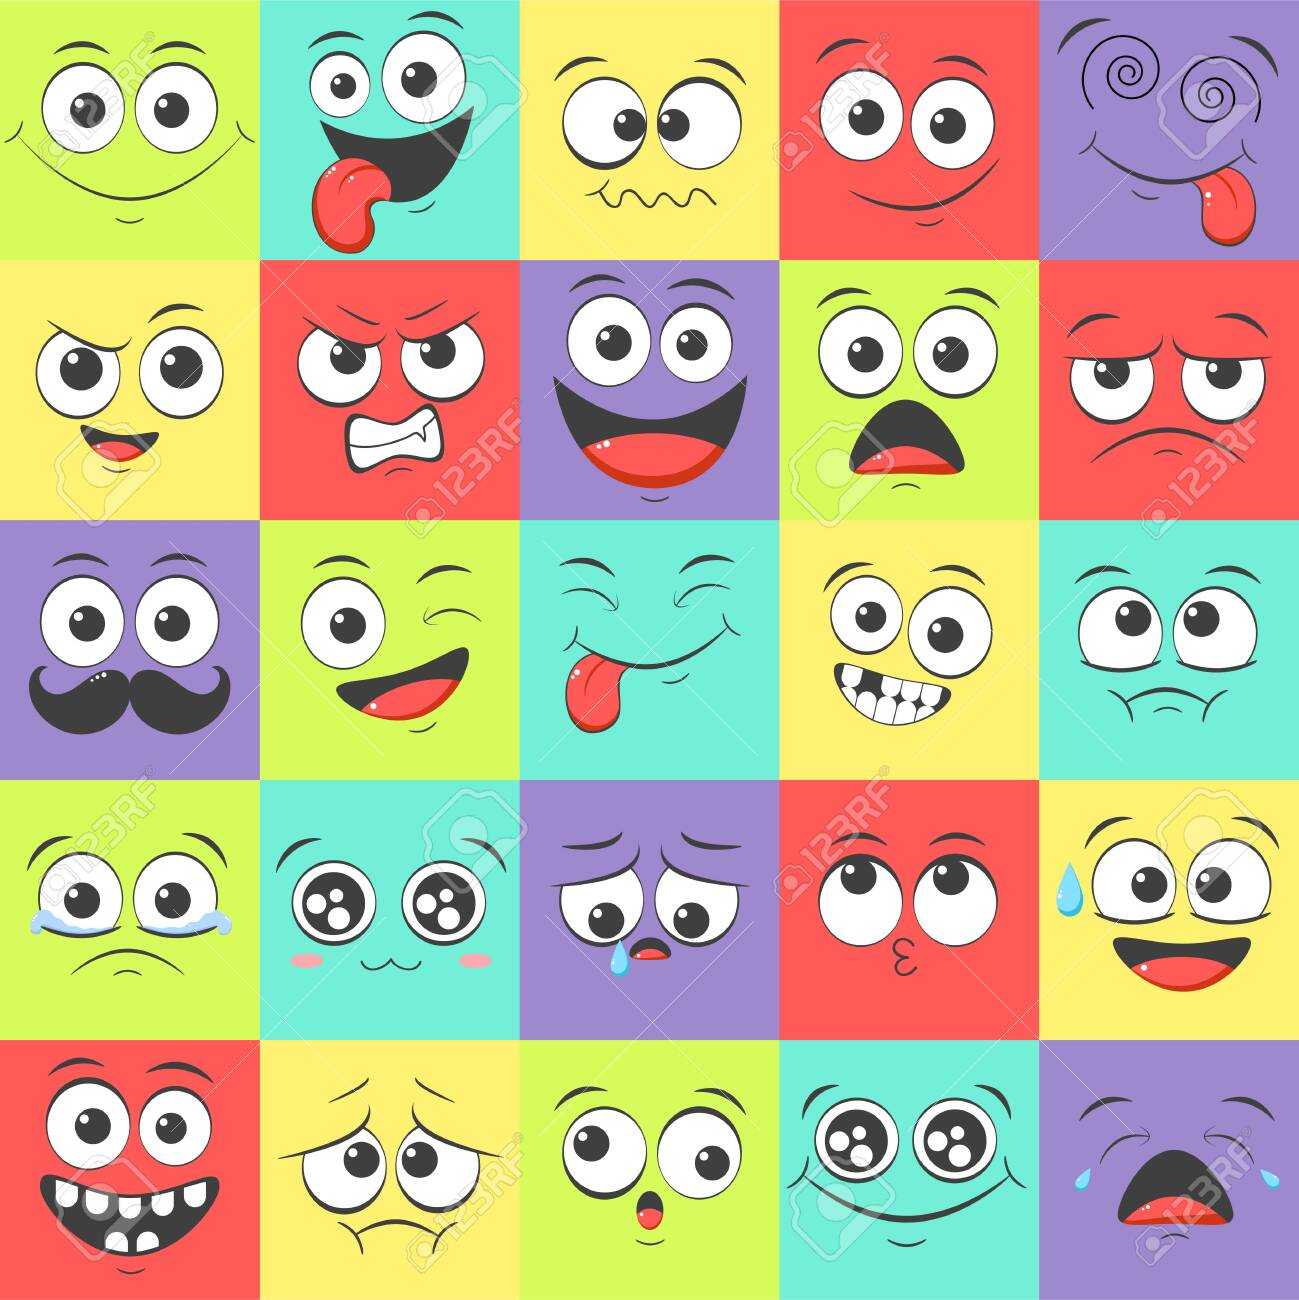 Seamless pattern with emoticons with different mood. Smile cartoon emoji face happy, sad, fear, crazy. Endless texture can be used for pattern fills, web page background, surface textures. - 150450148